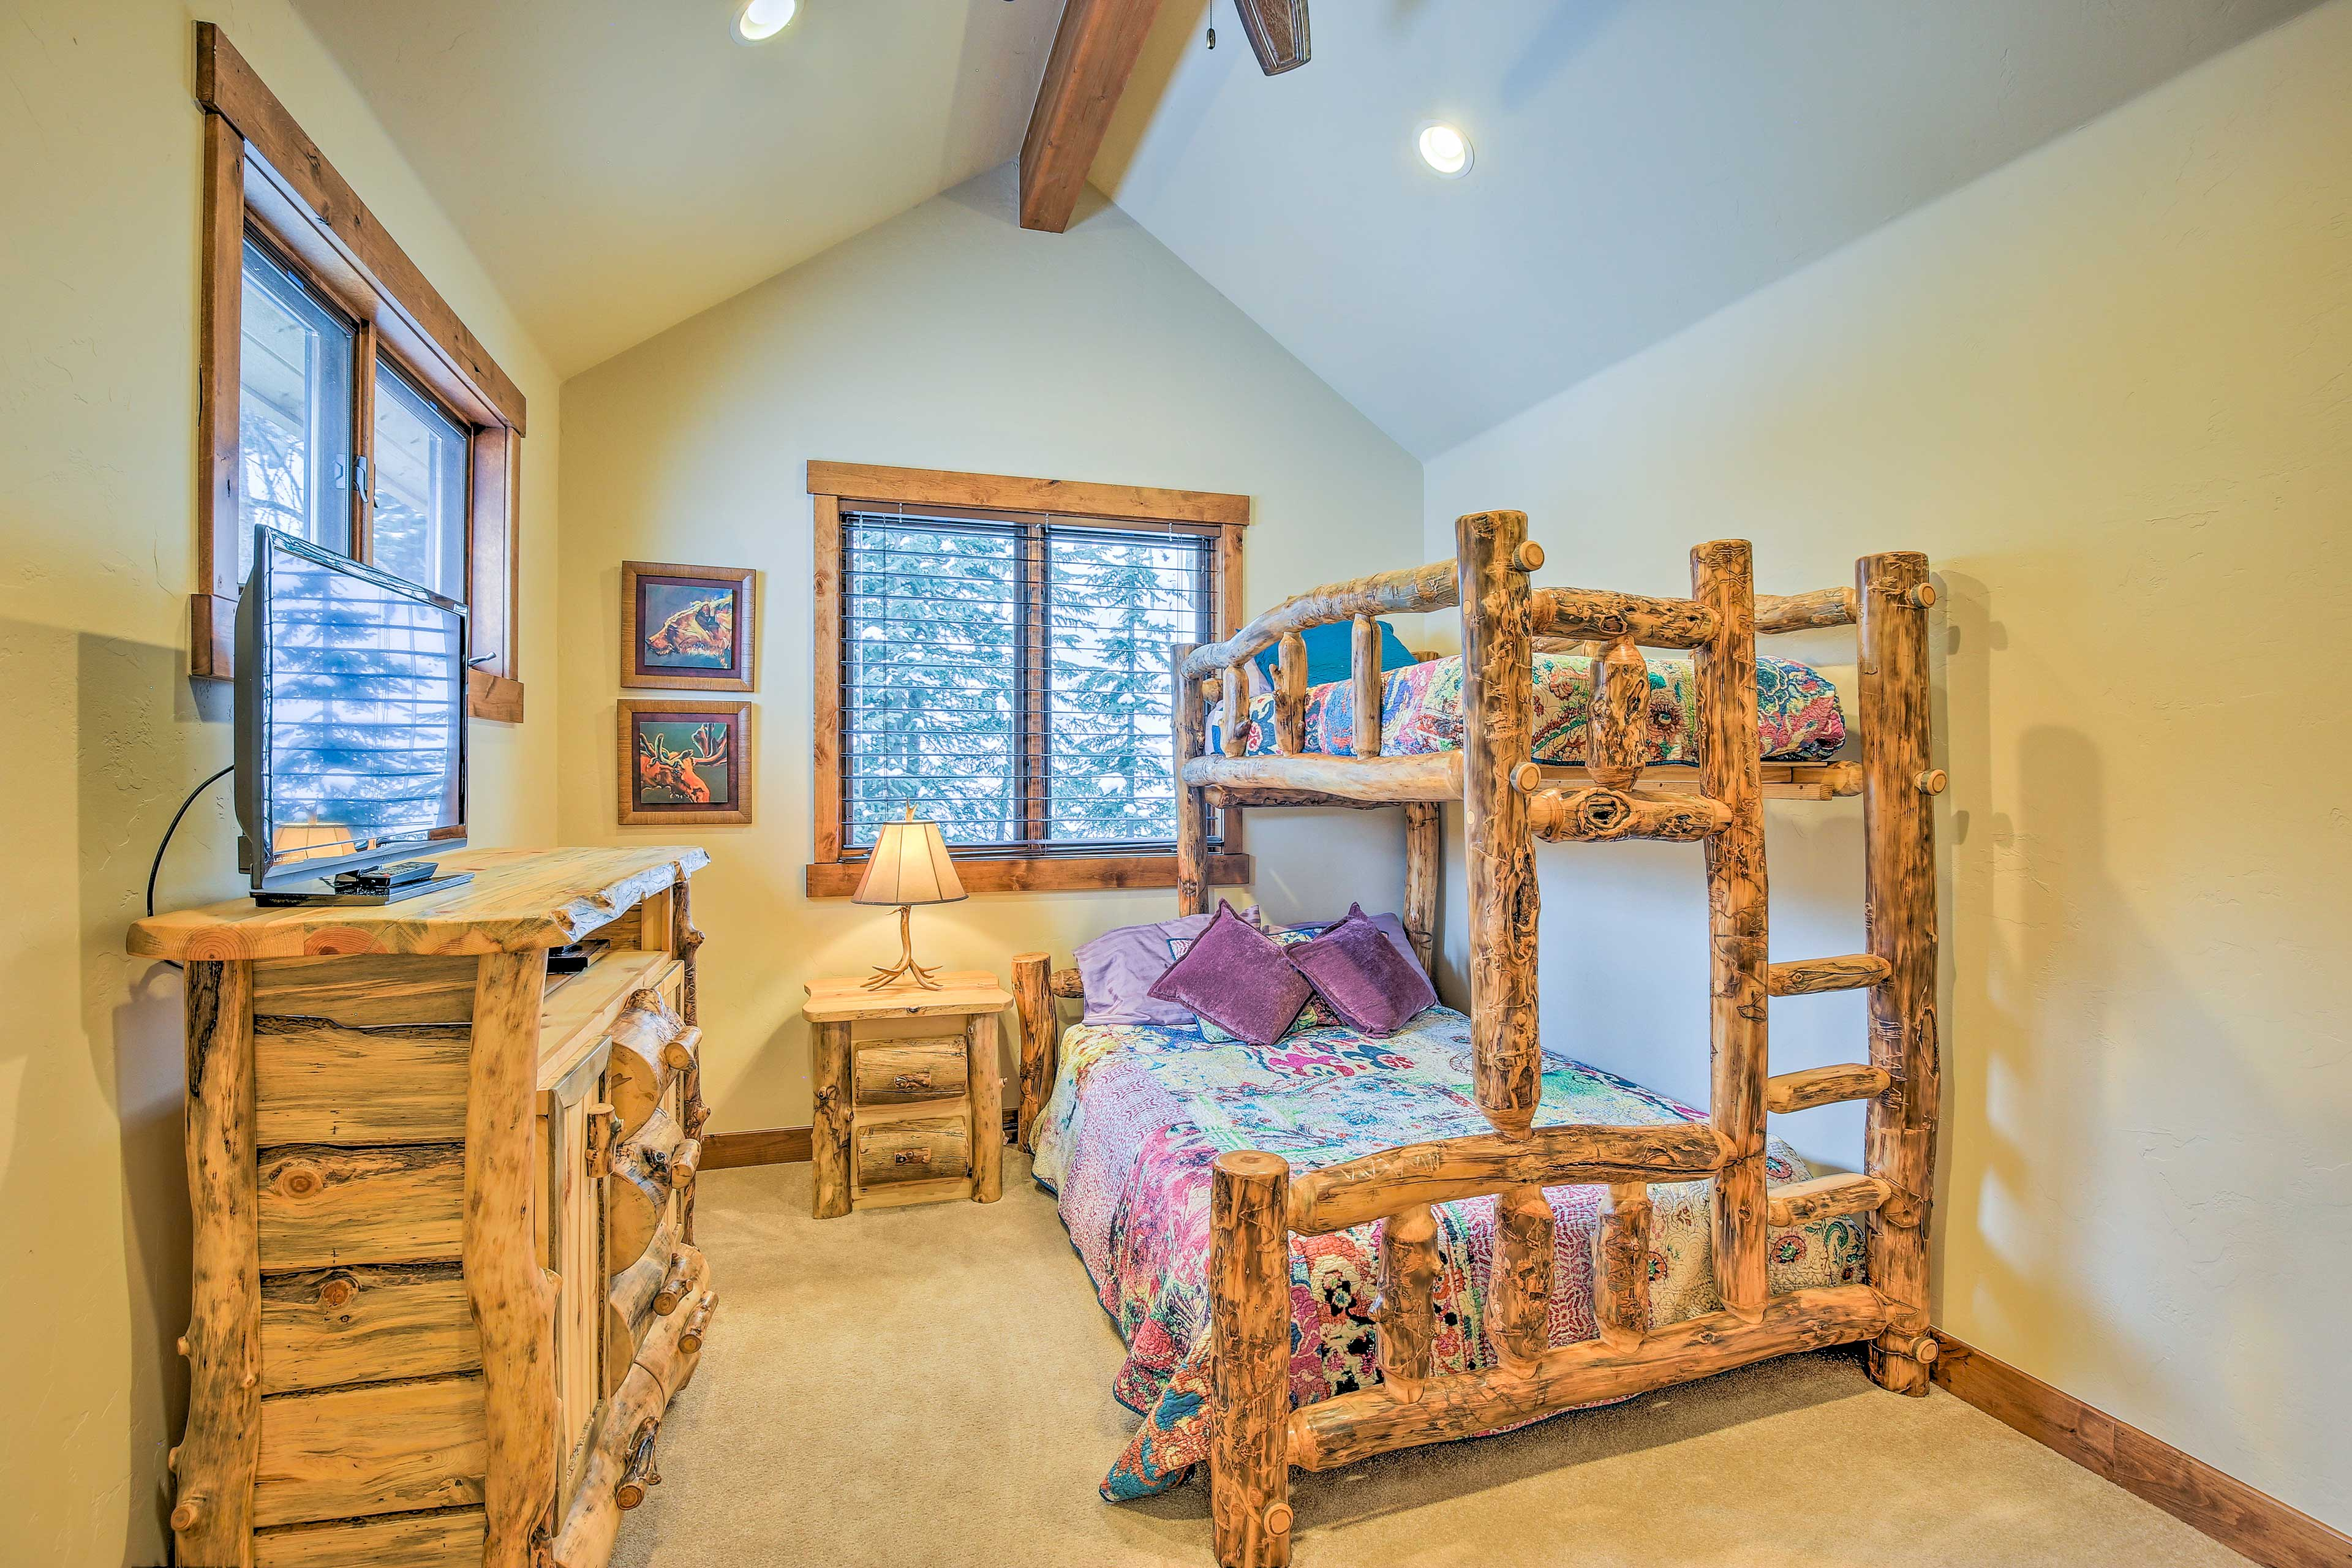 A second twin-over-queen bunk bed completes the last bedroom.